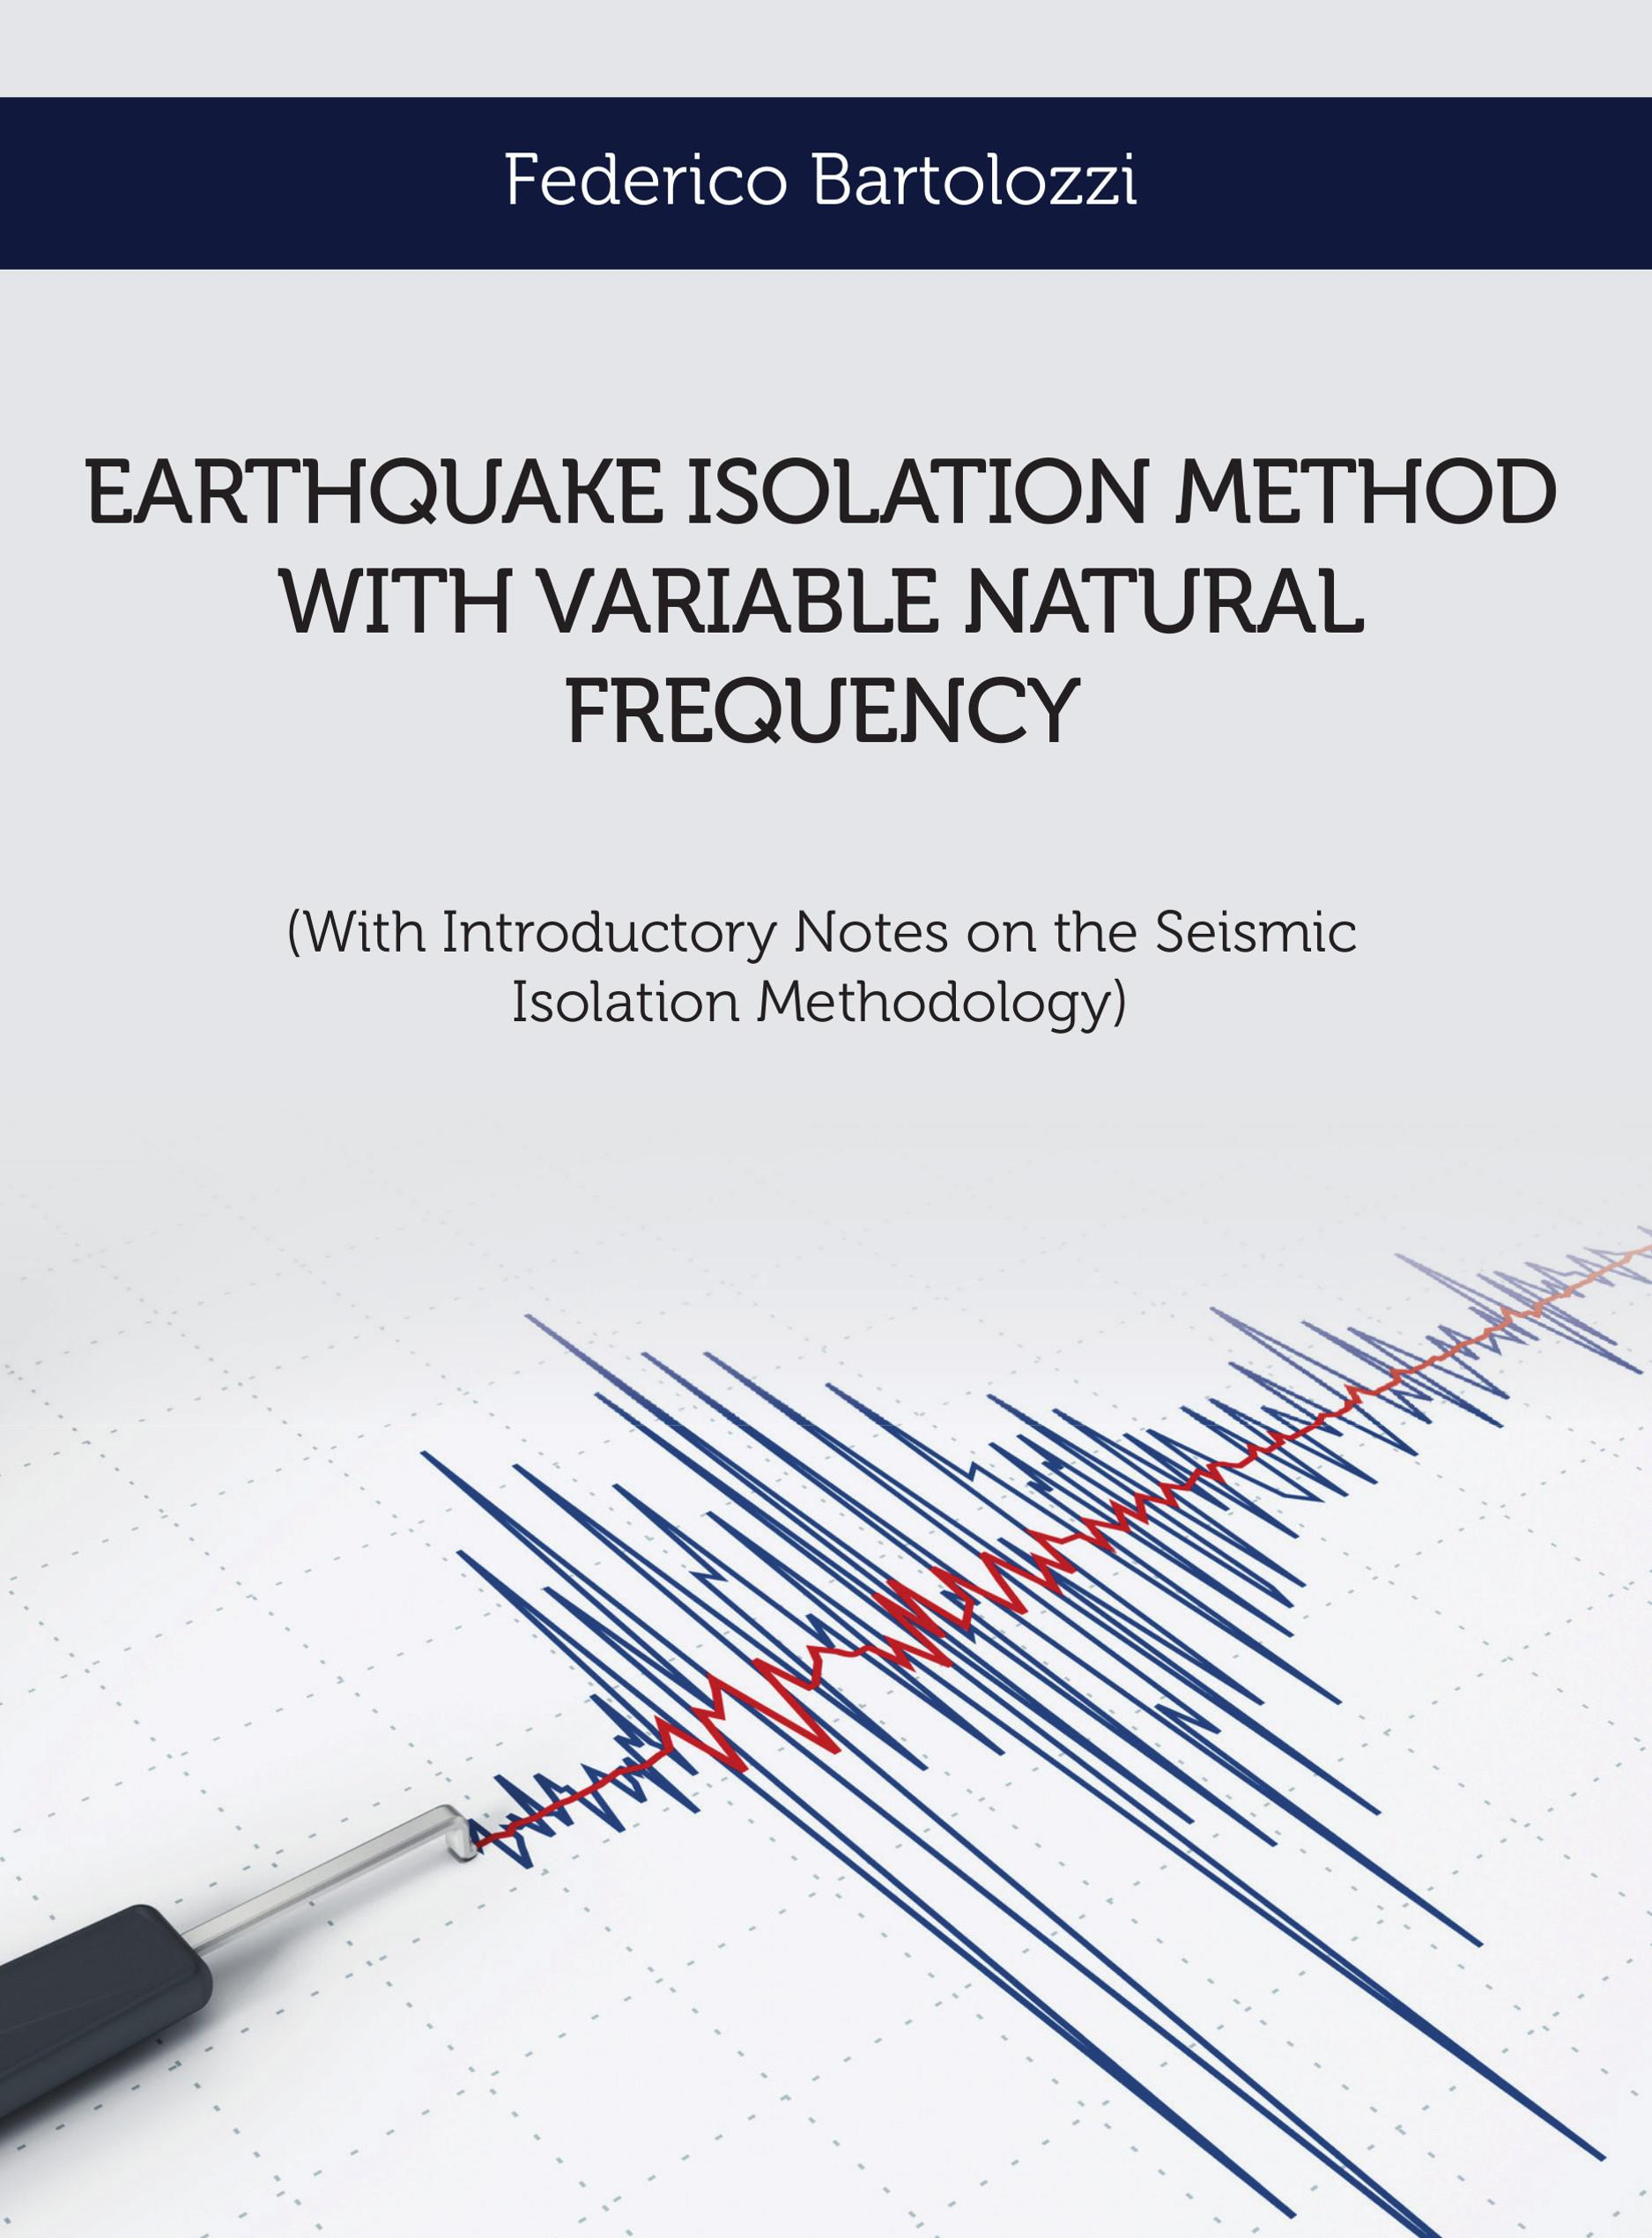 Earthquake isolation method with variable natural frequency